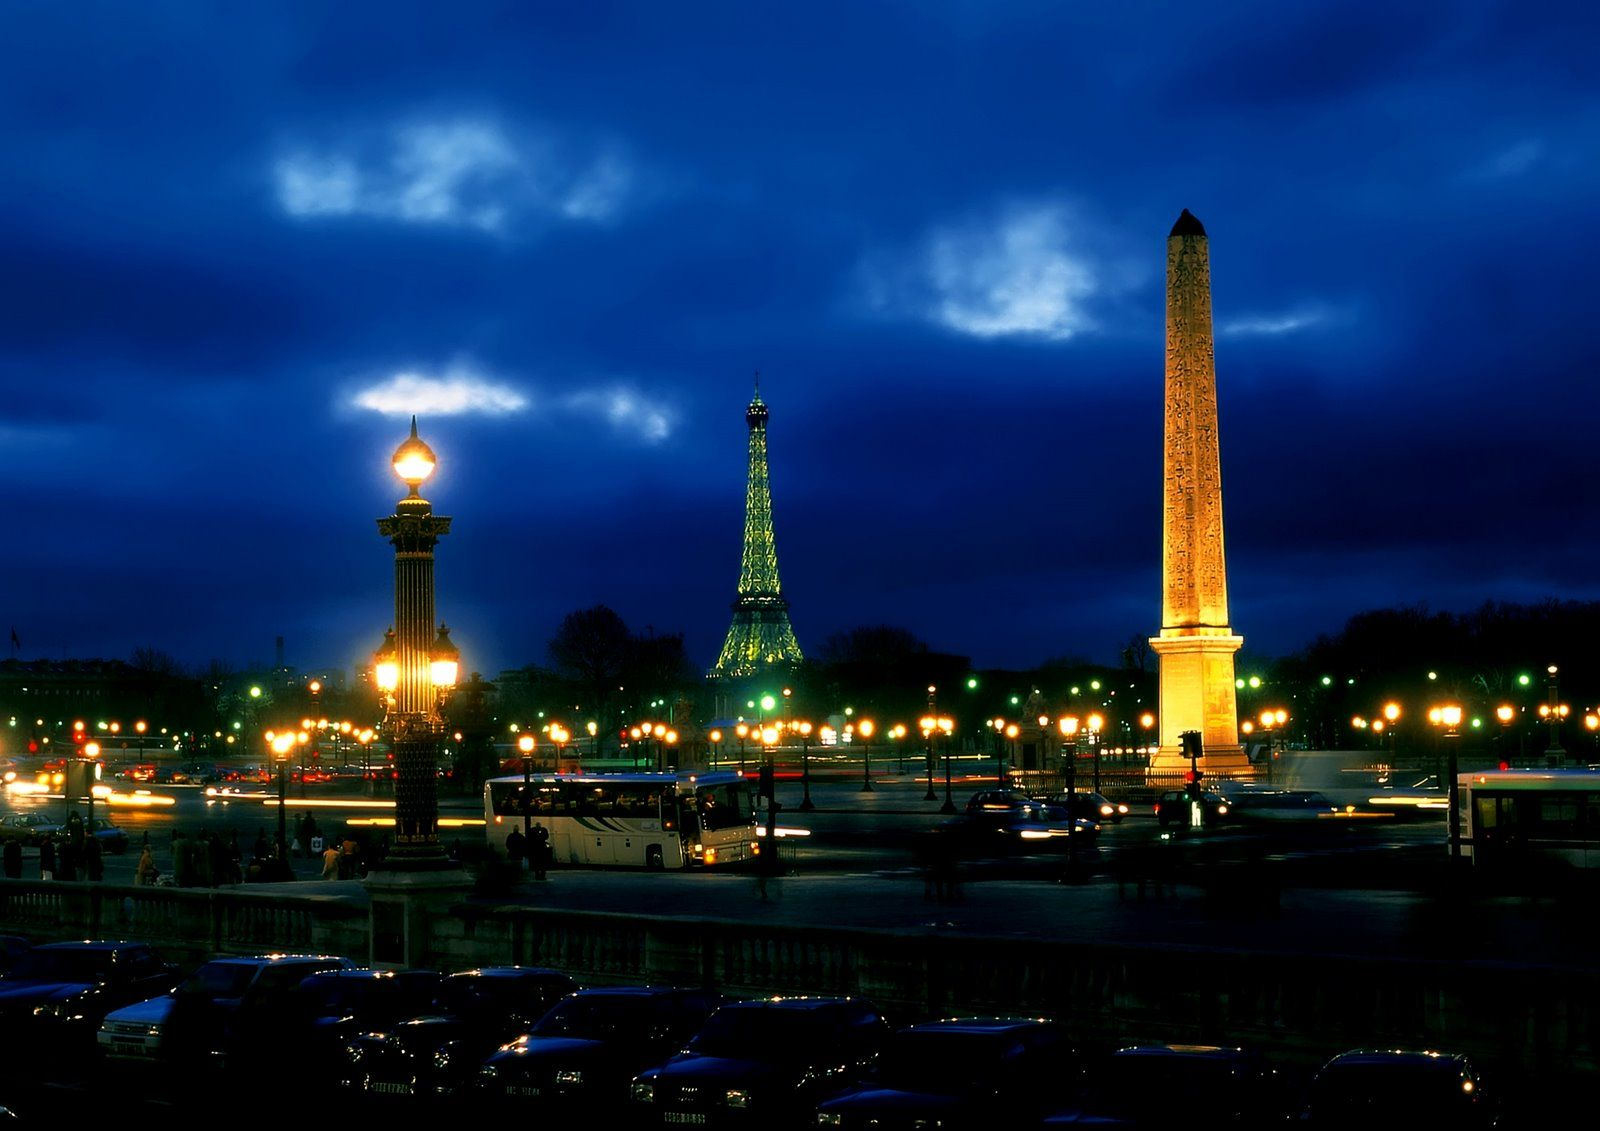 paris in night | paris at night wallpaper | free download wallpaper